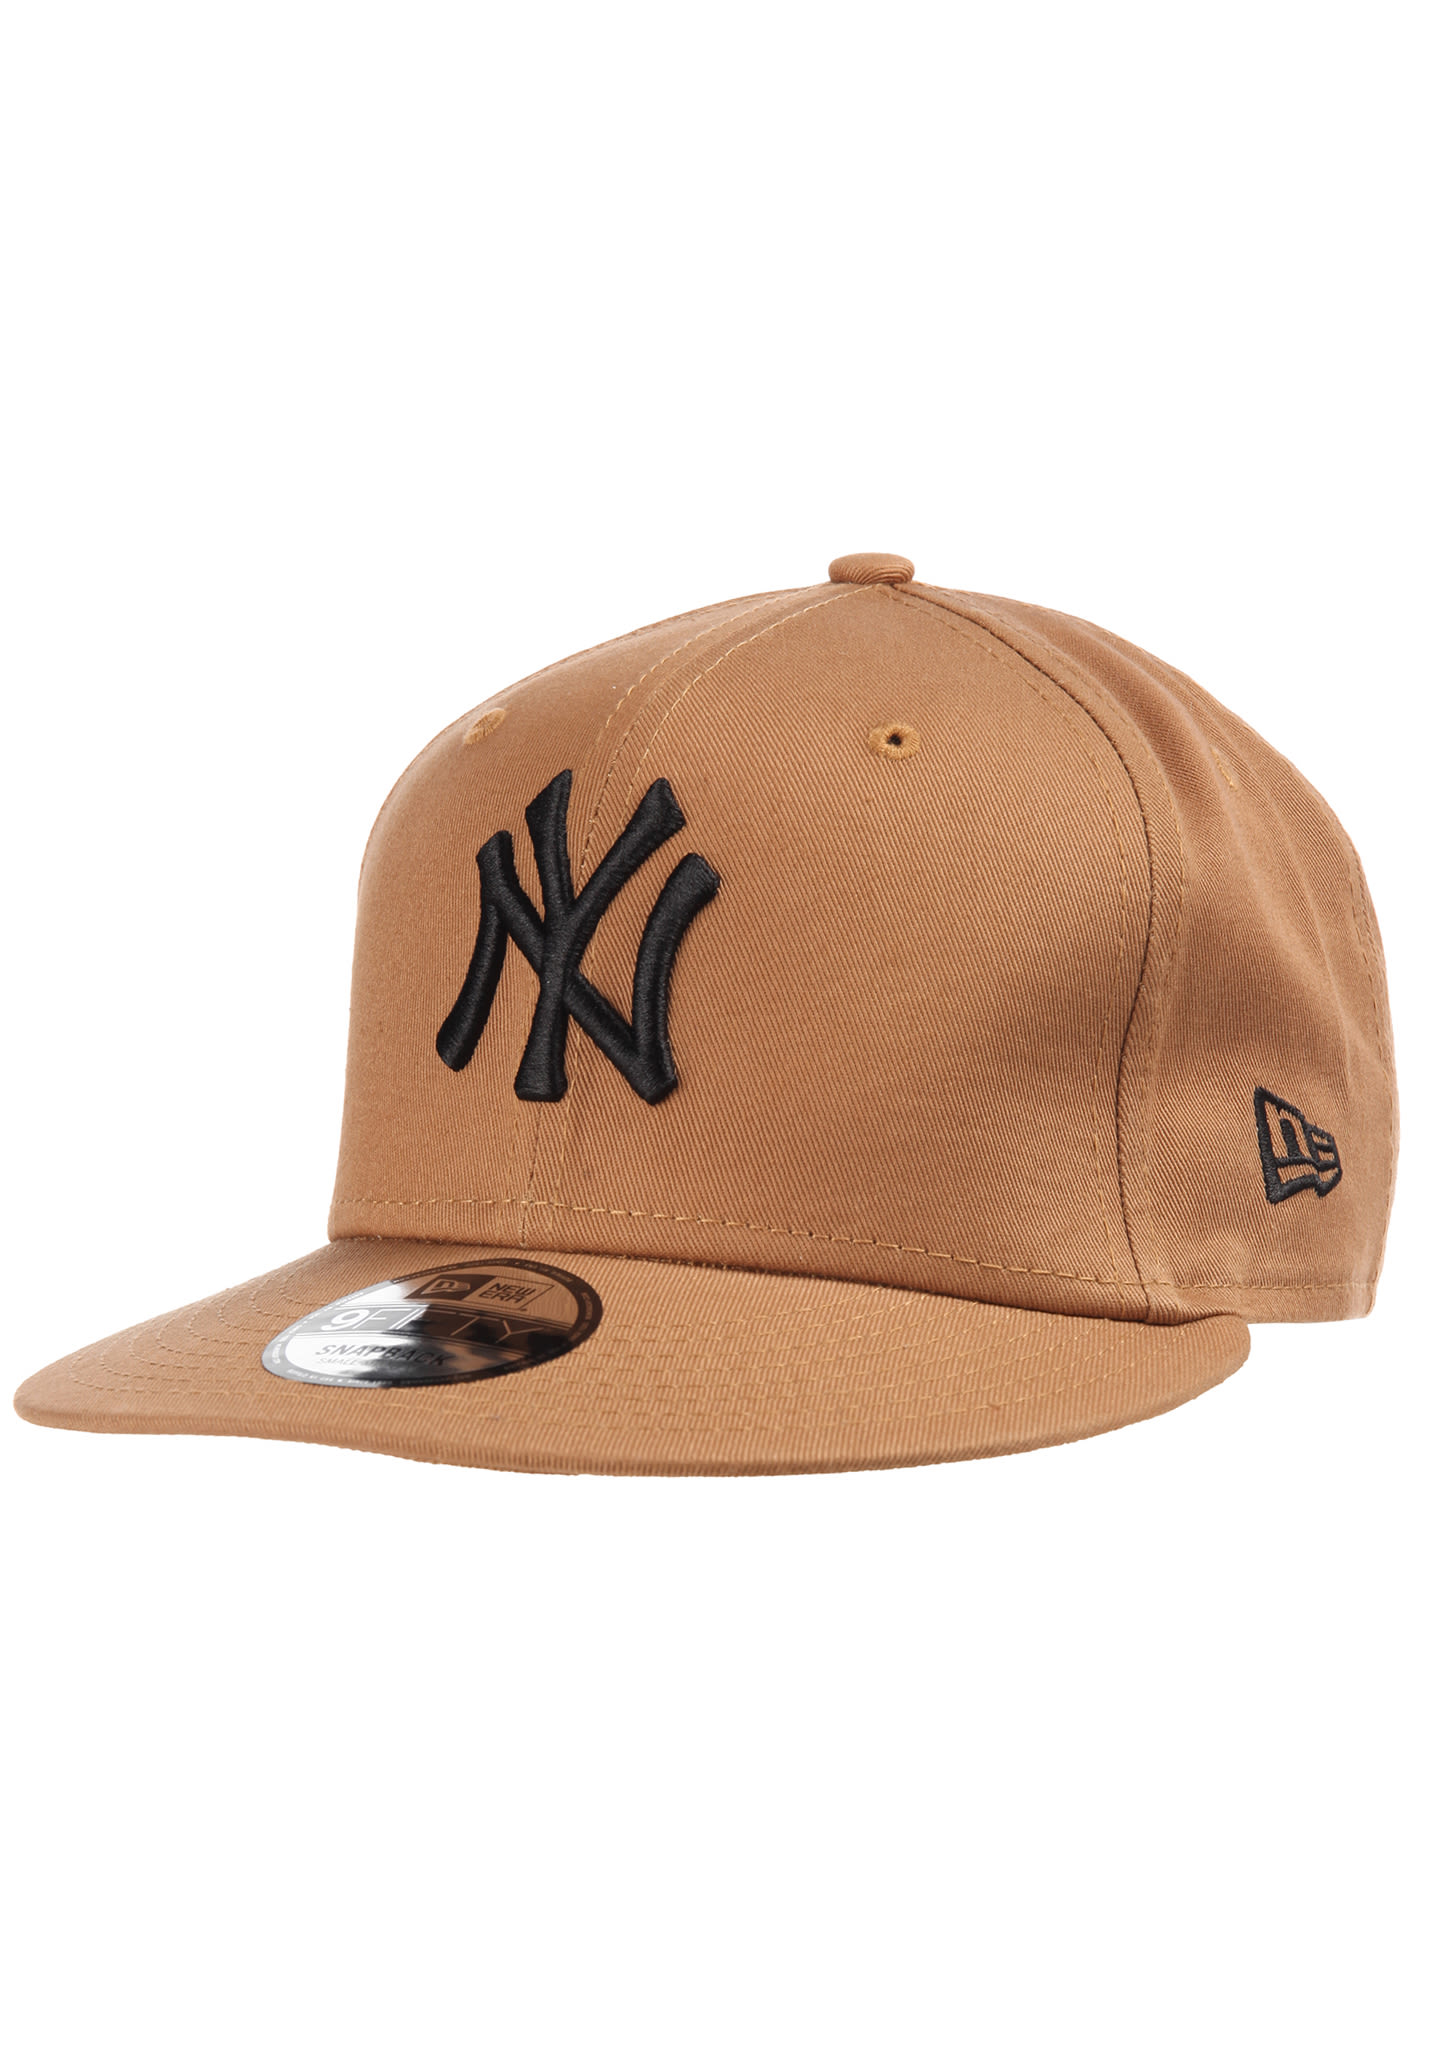 bf914160aae85 NEW Era 9Fifty New York Yankees - Snapback Cap - Brown - Planet Sports